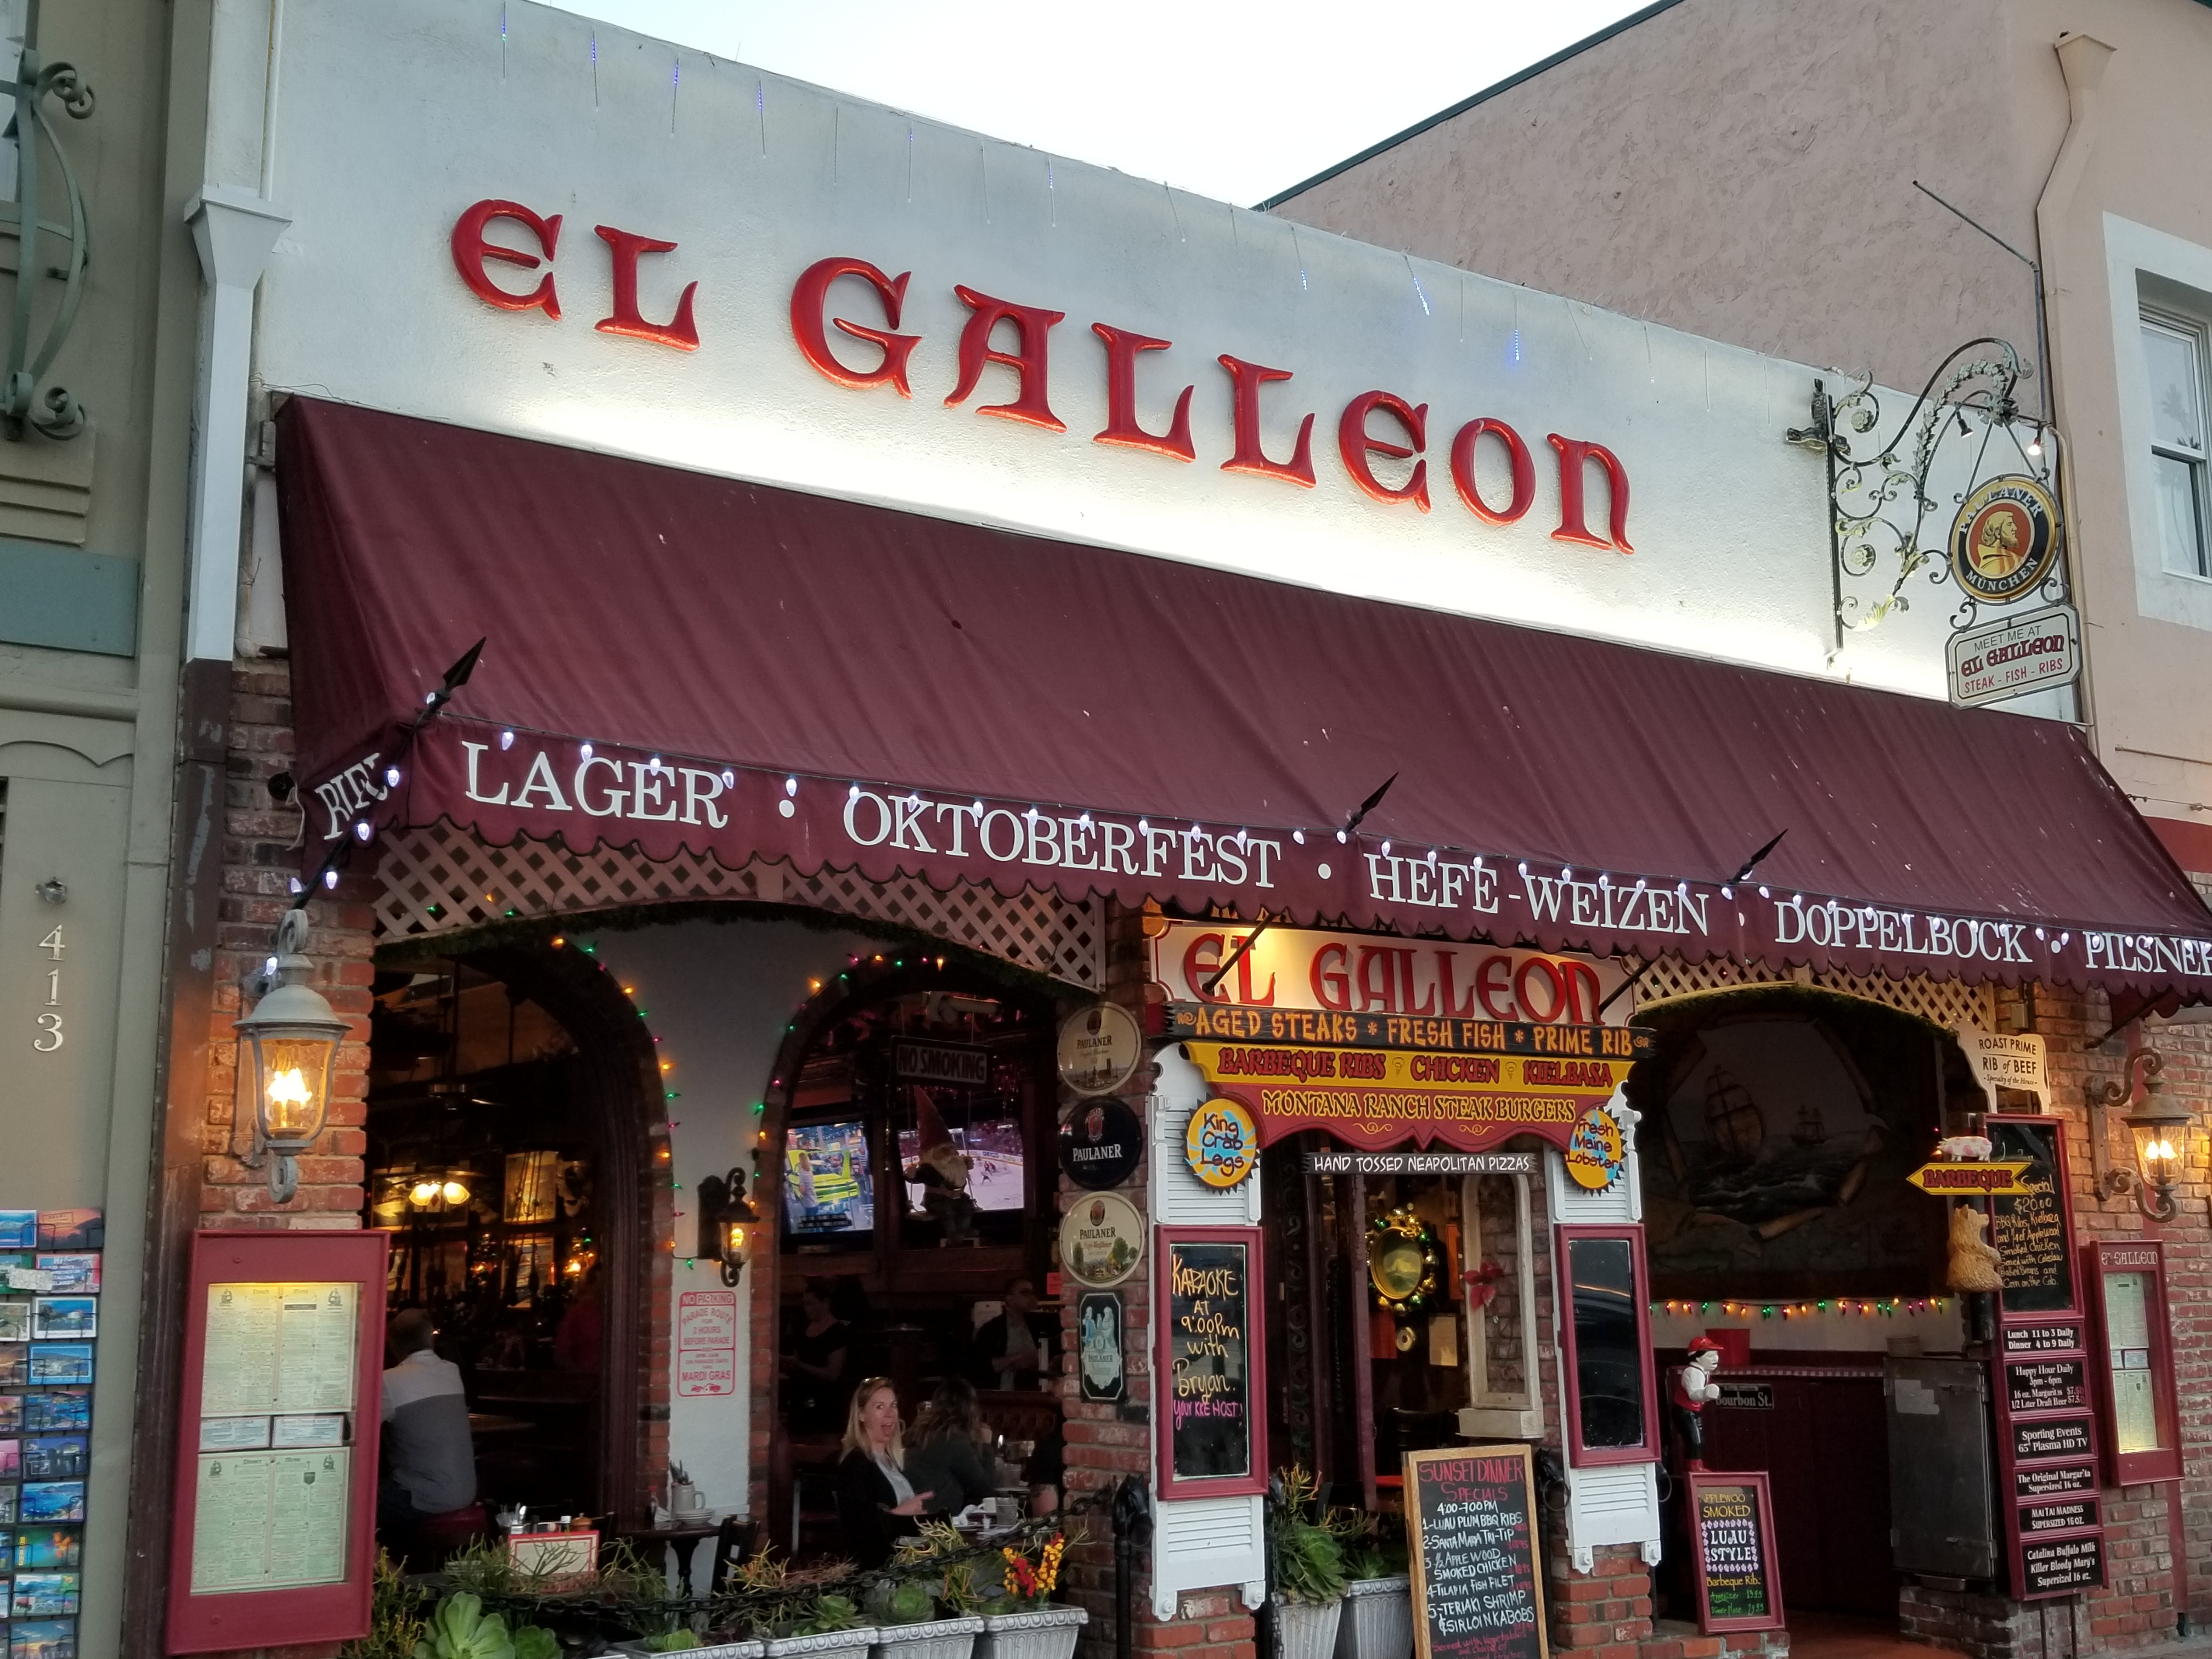 Catalina-El-Galleon-karaoke-bar